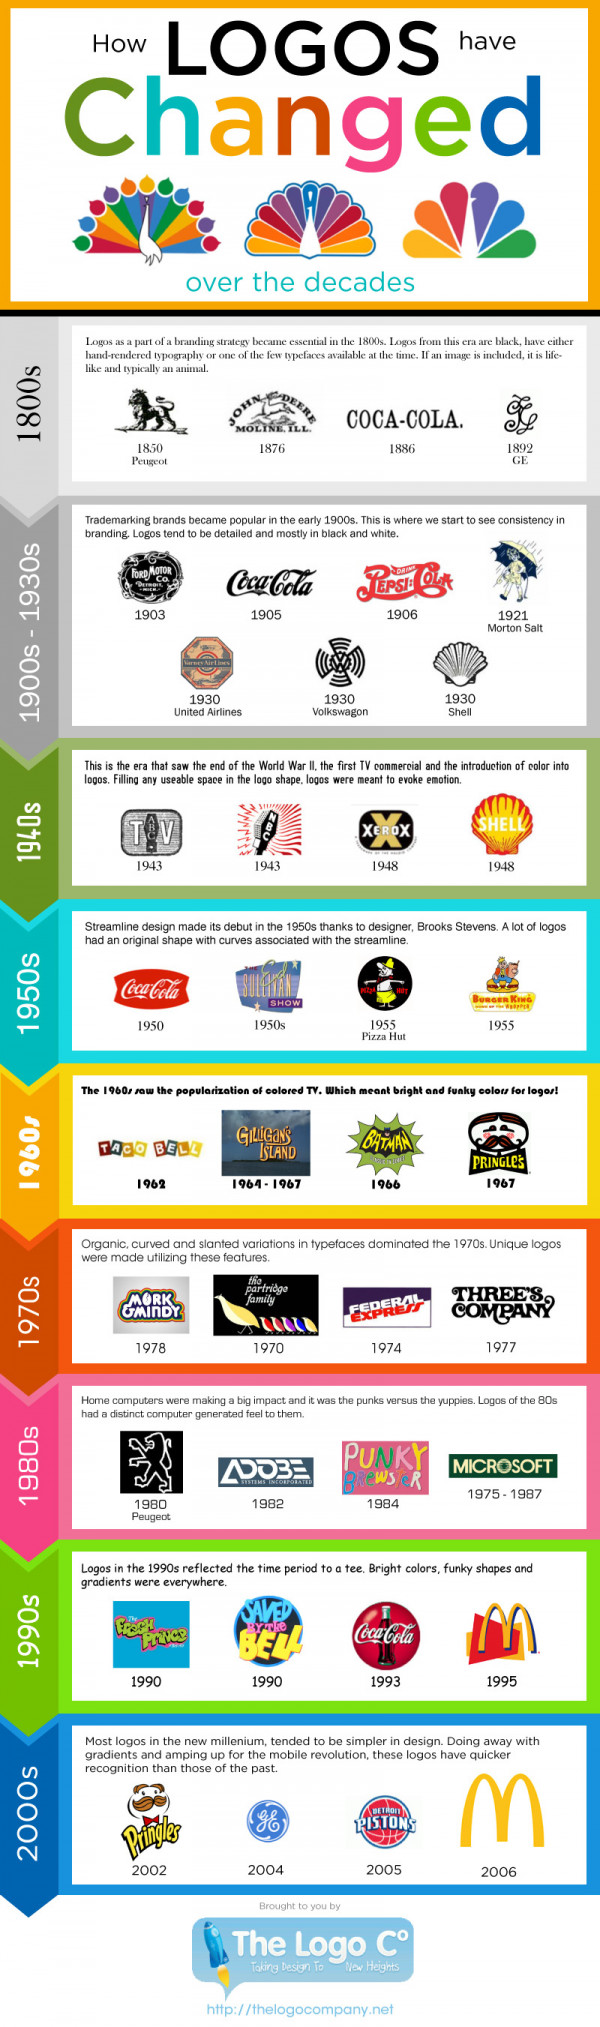 Iconic Logos Through The Years